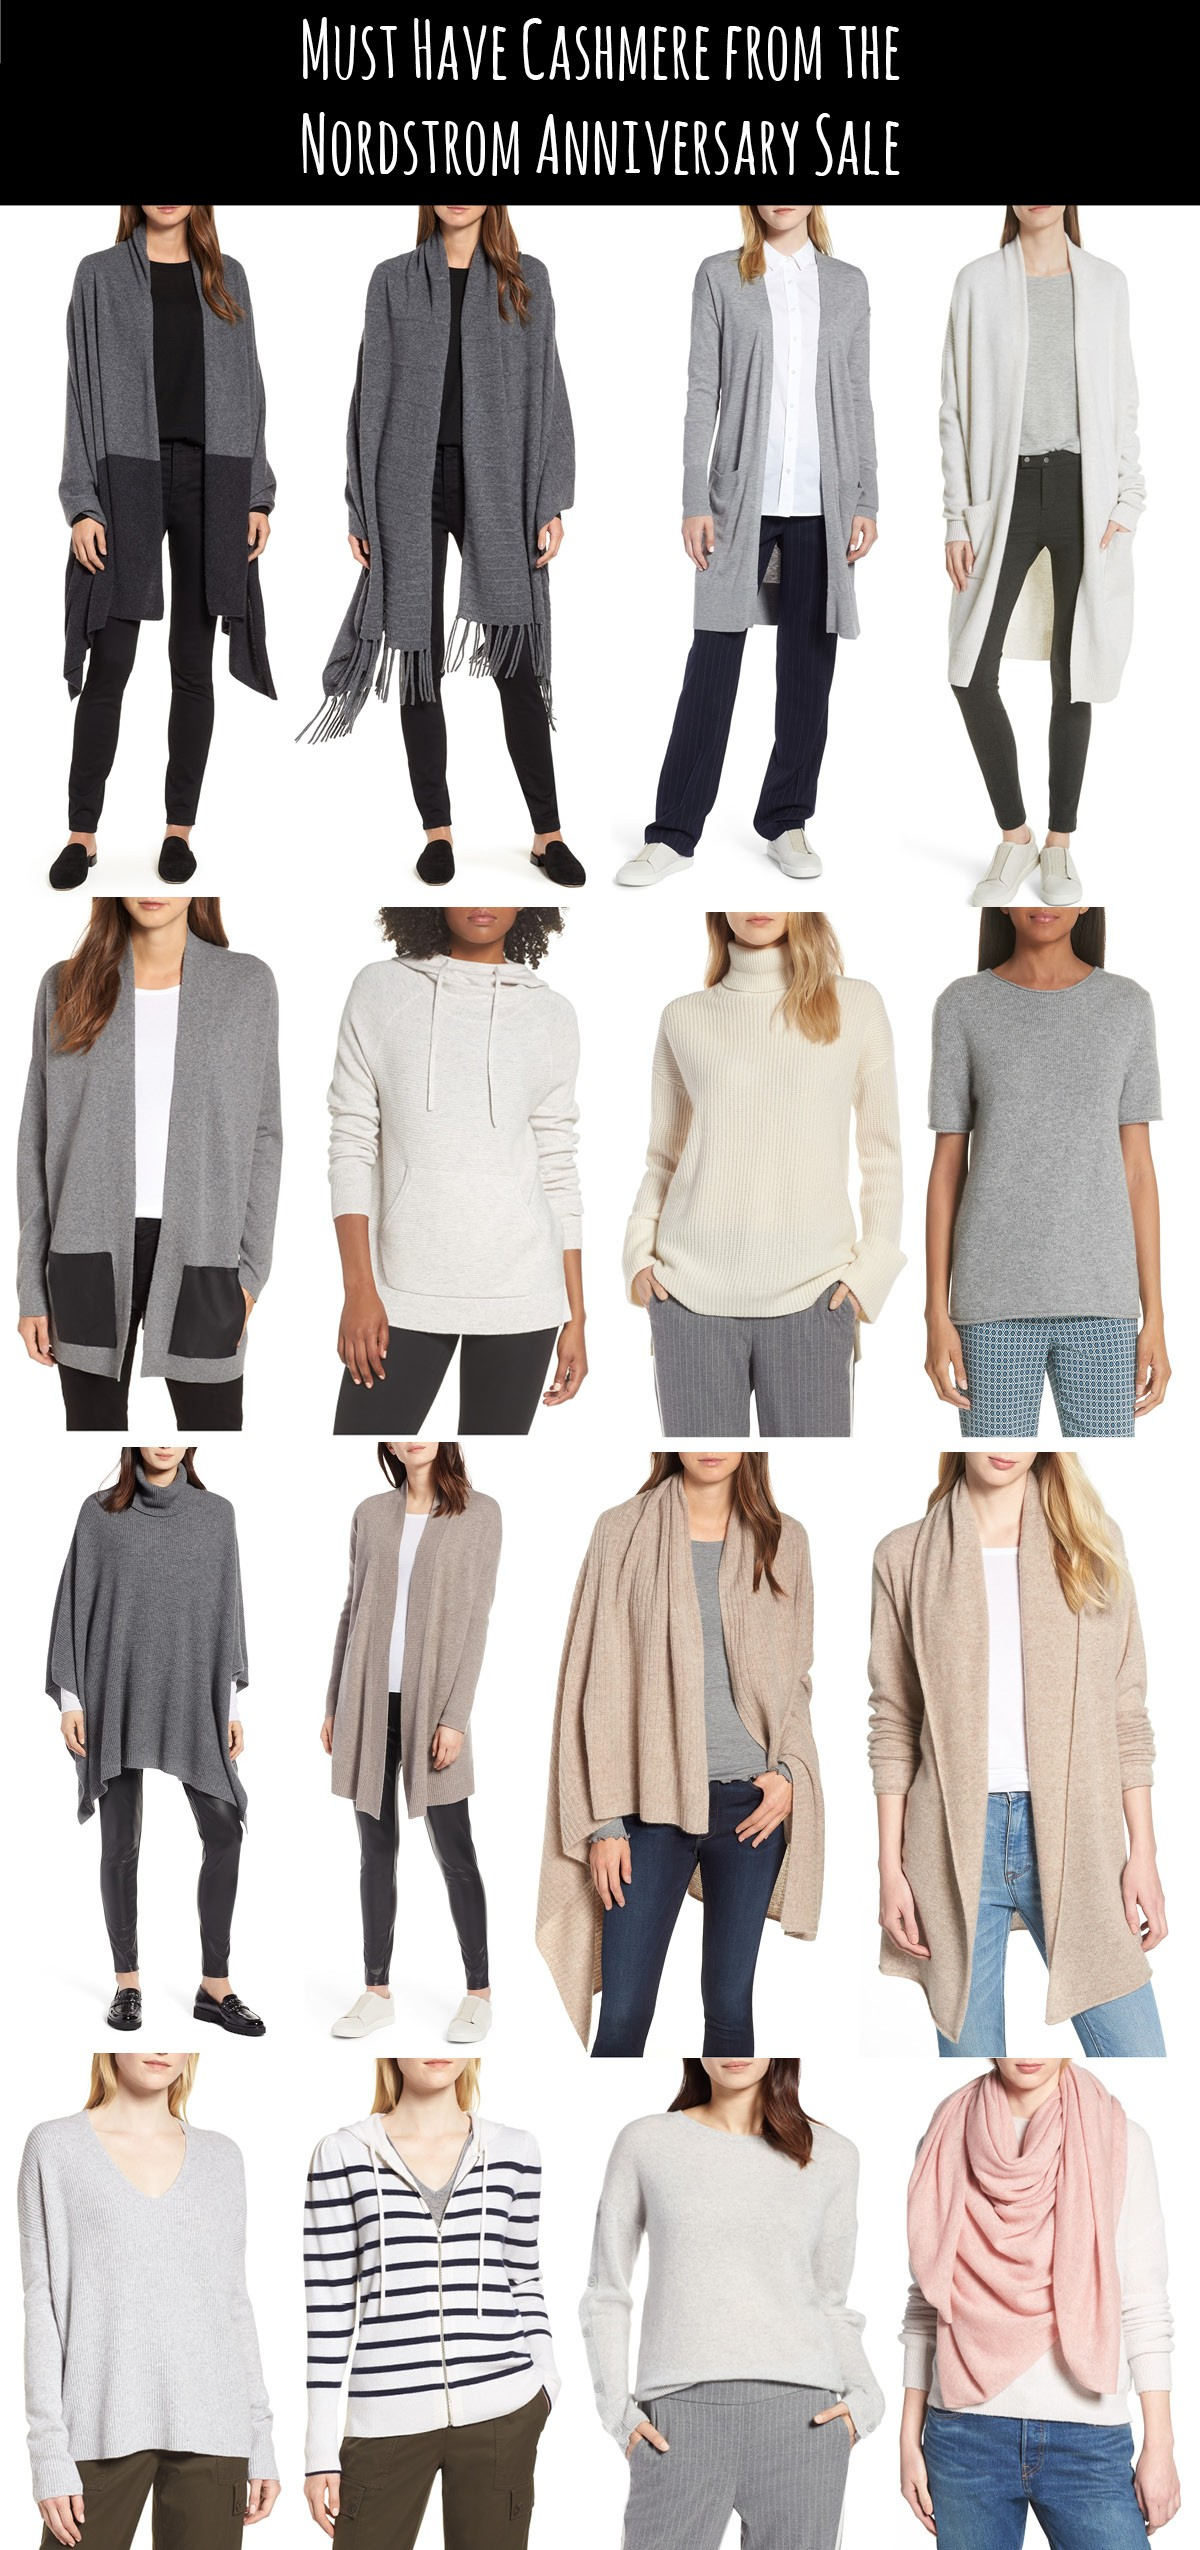 e297fb7cc5d I should also note there are a couple of sweaters cardigans that are blends  with a small amount of wool. Don t let that scare you away though  they are  just ...